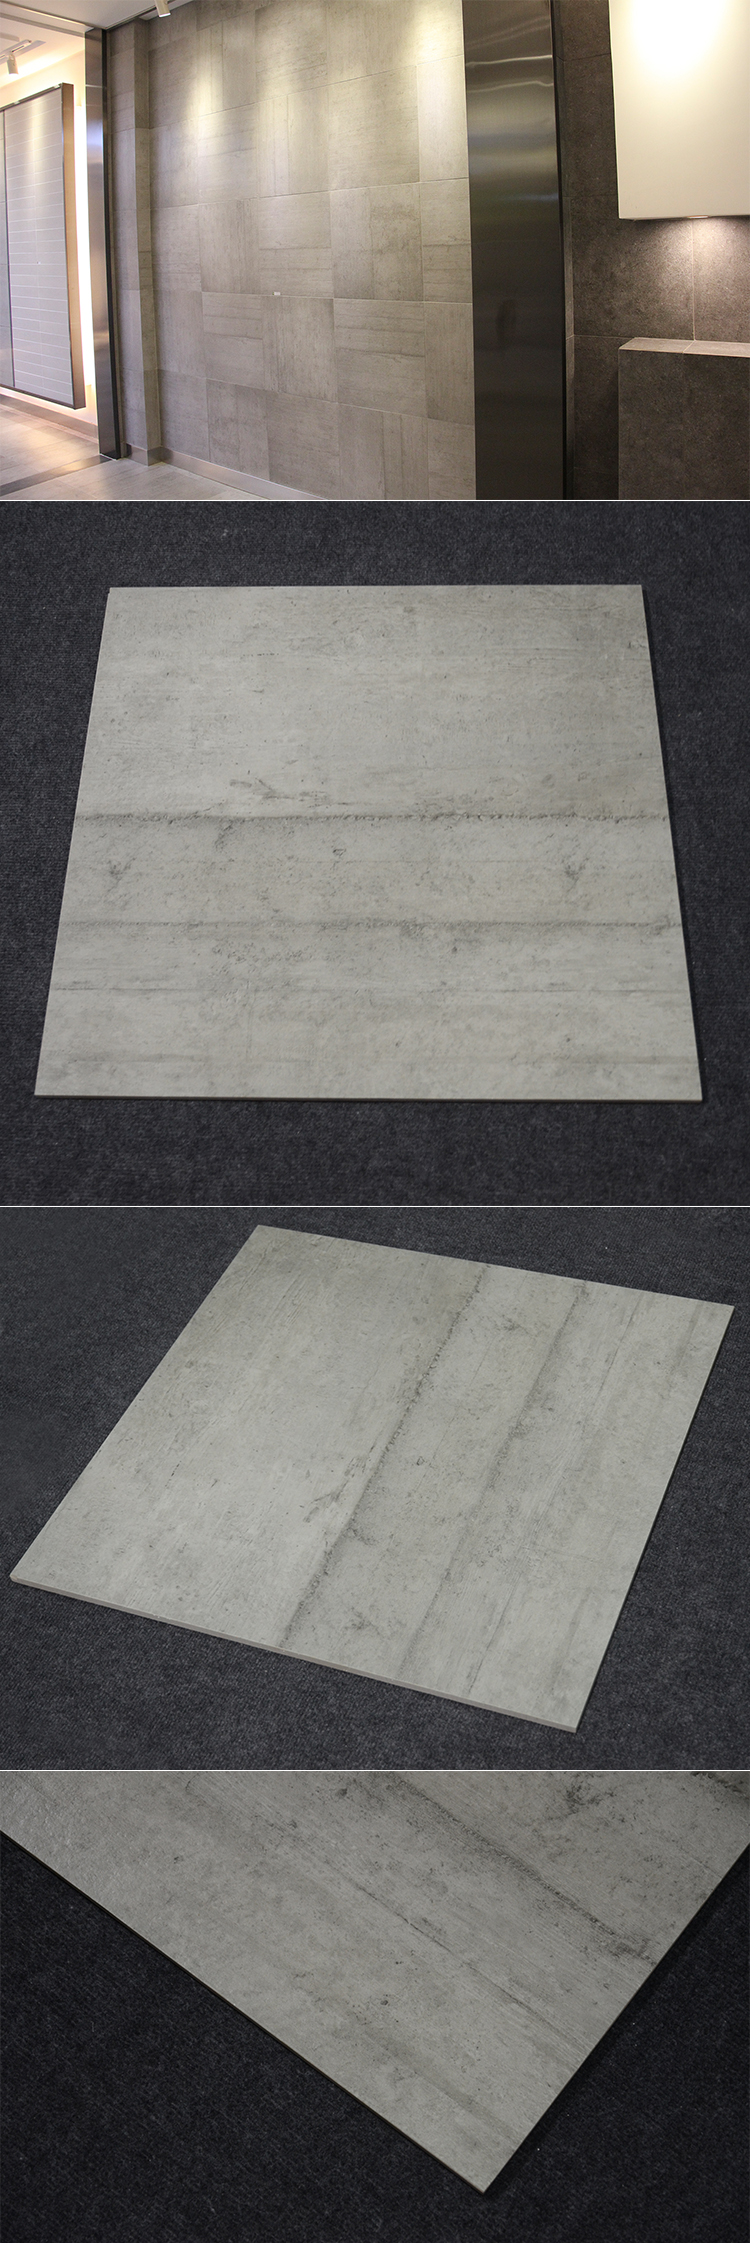 HCM6008 discontinued ceramic floor tile lowes floor tiles for bathrooms